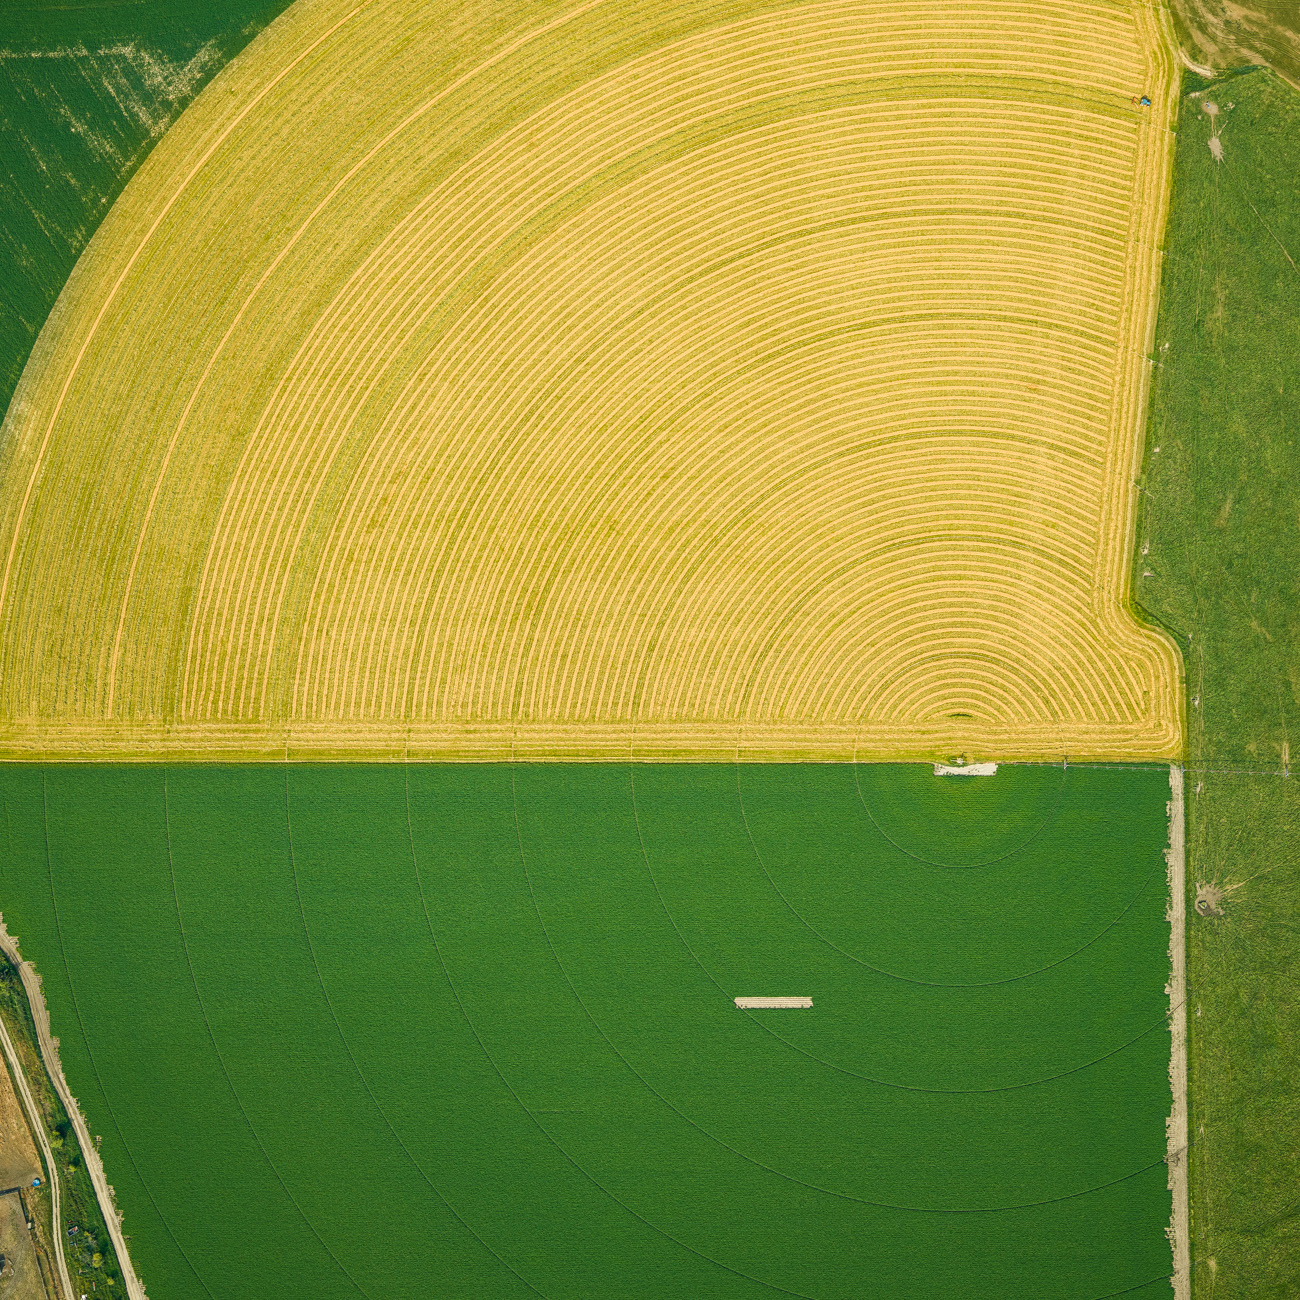 yellow farmland